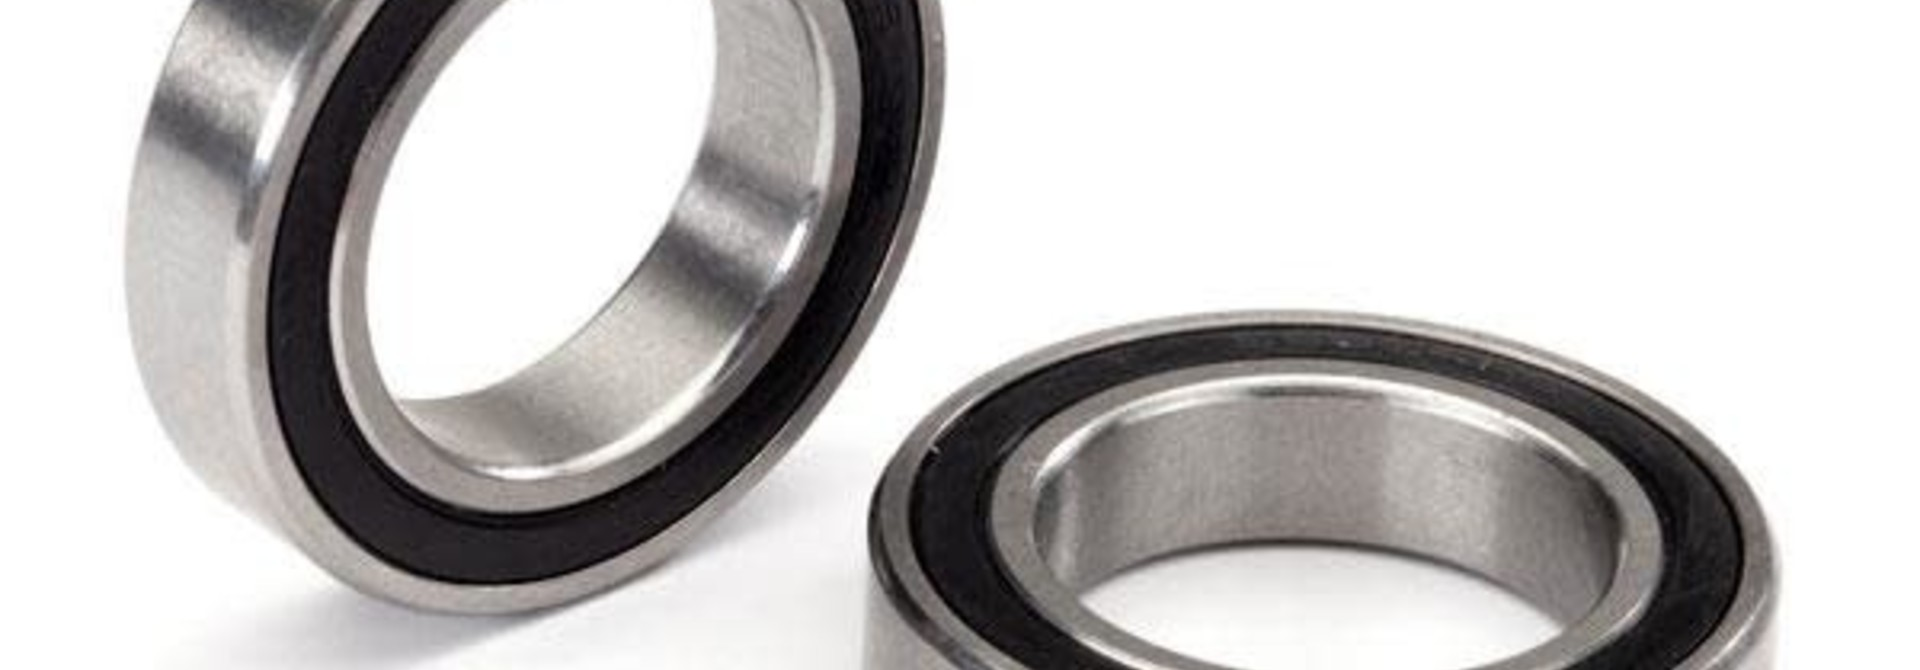 Ball bearing, black rubber sealed, stainless (20x32x7mm) (2)